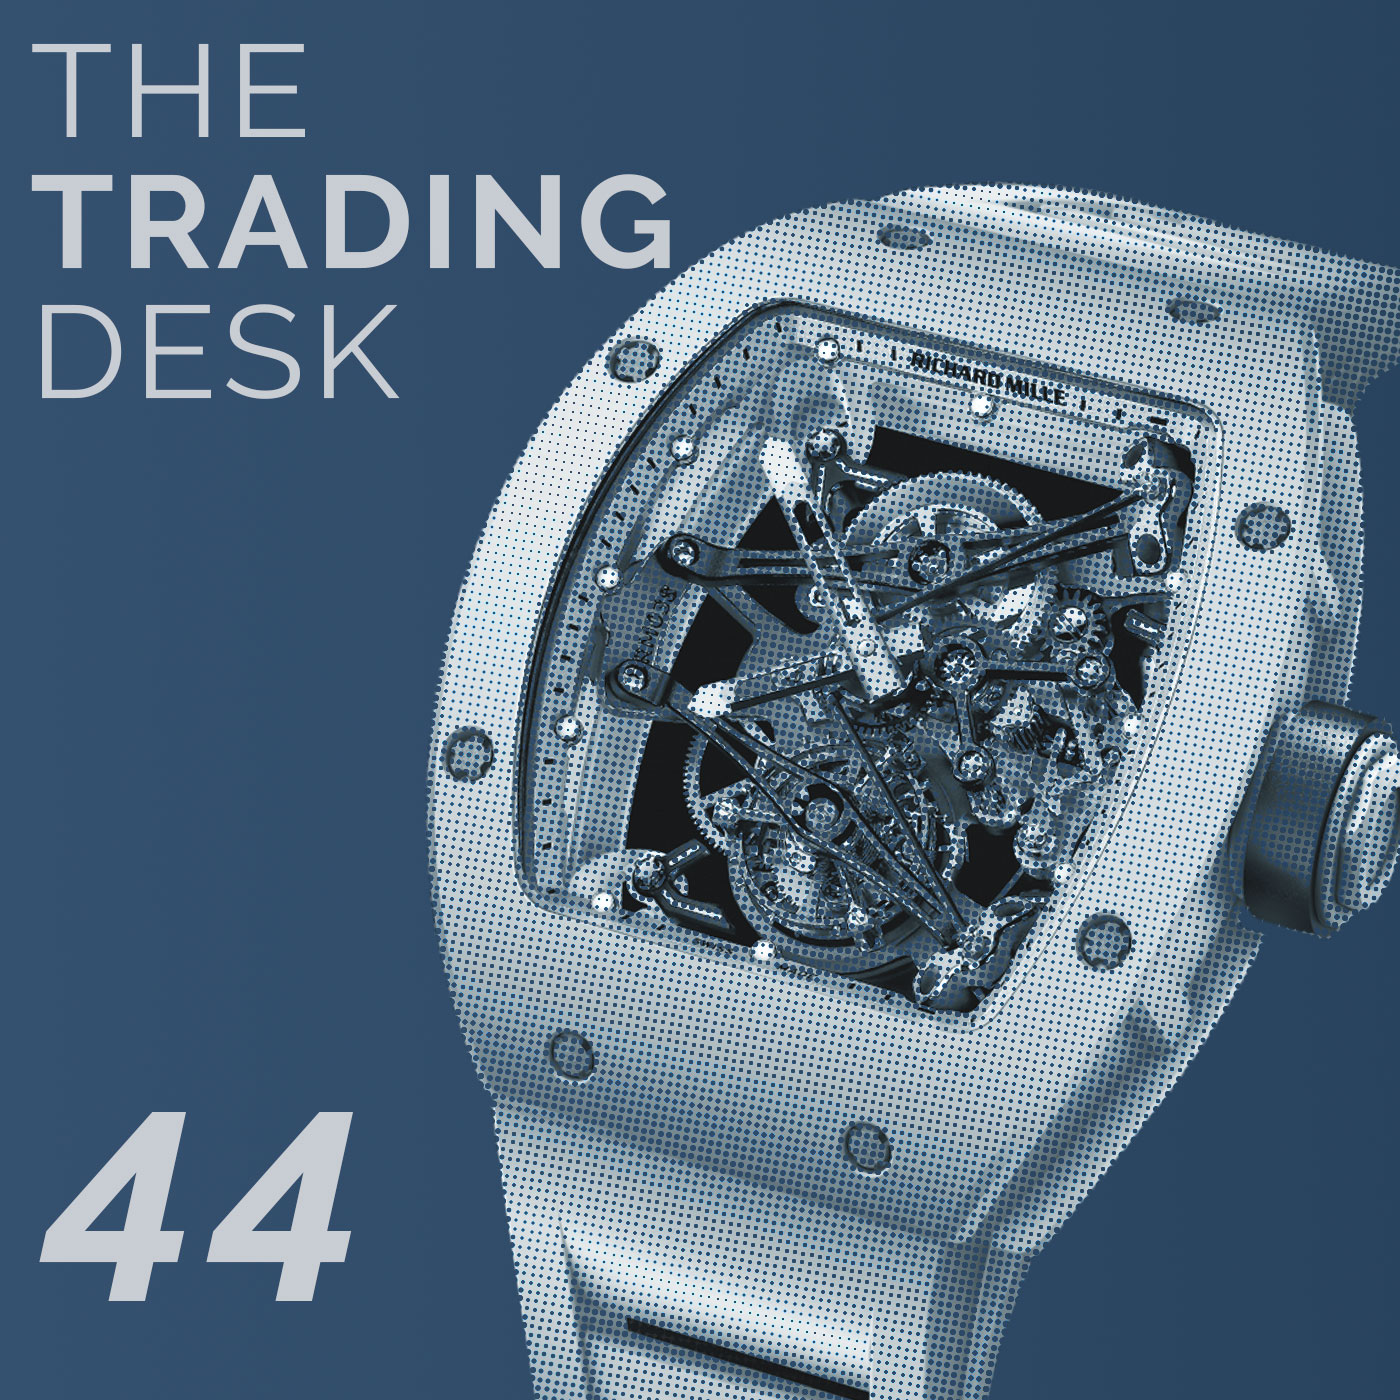 044: Richard Mille: Good Value or Over-hyped?